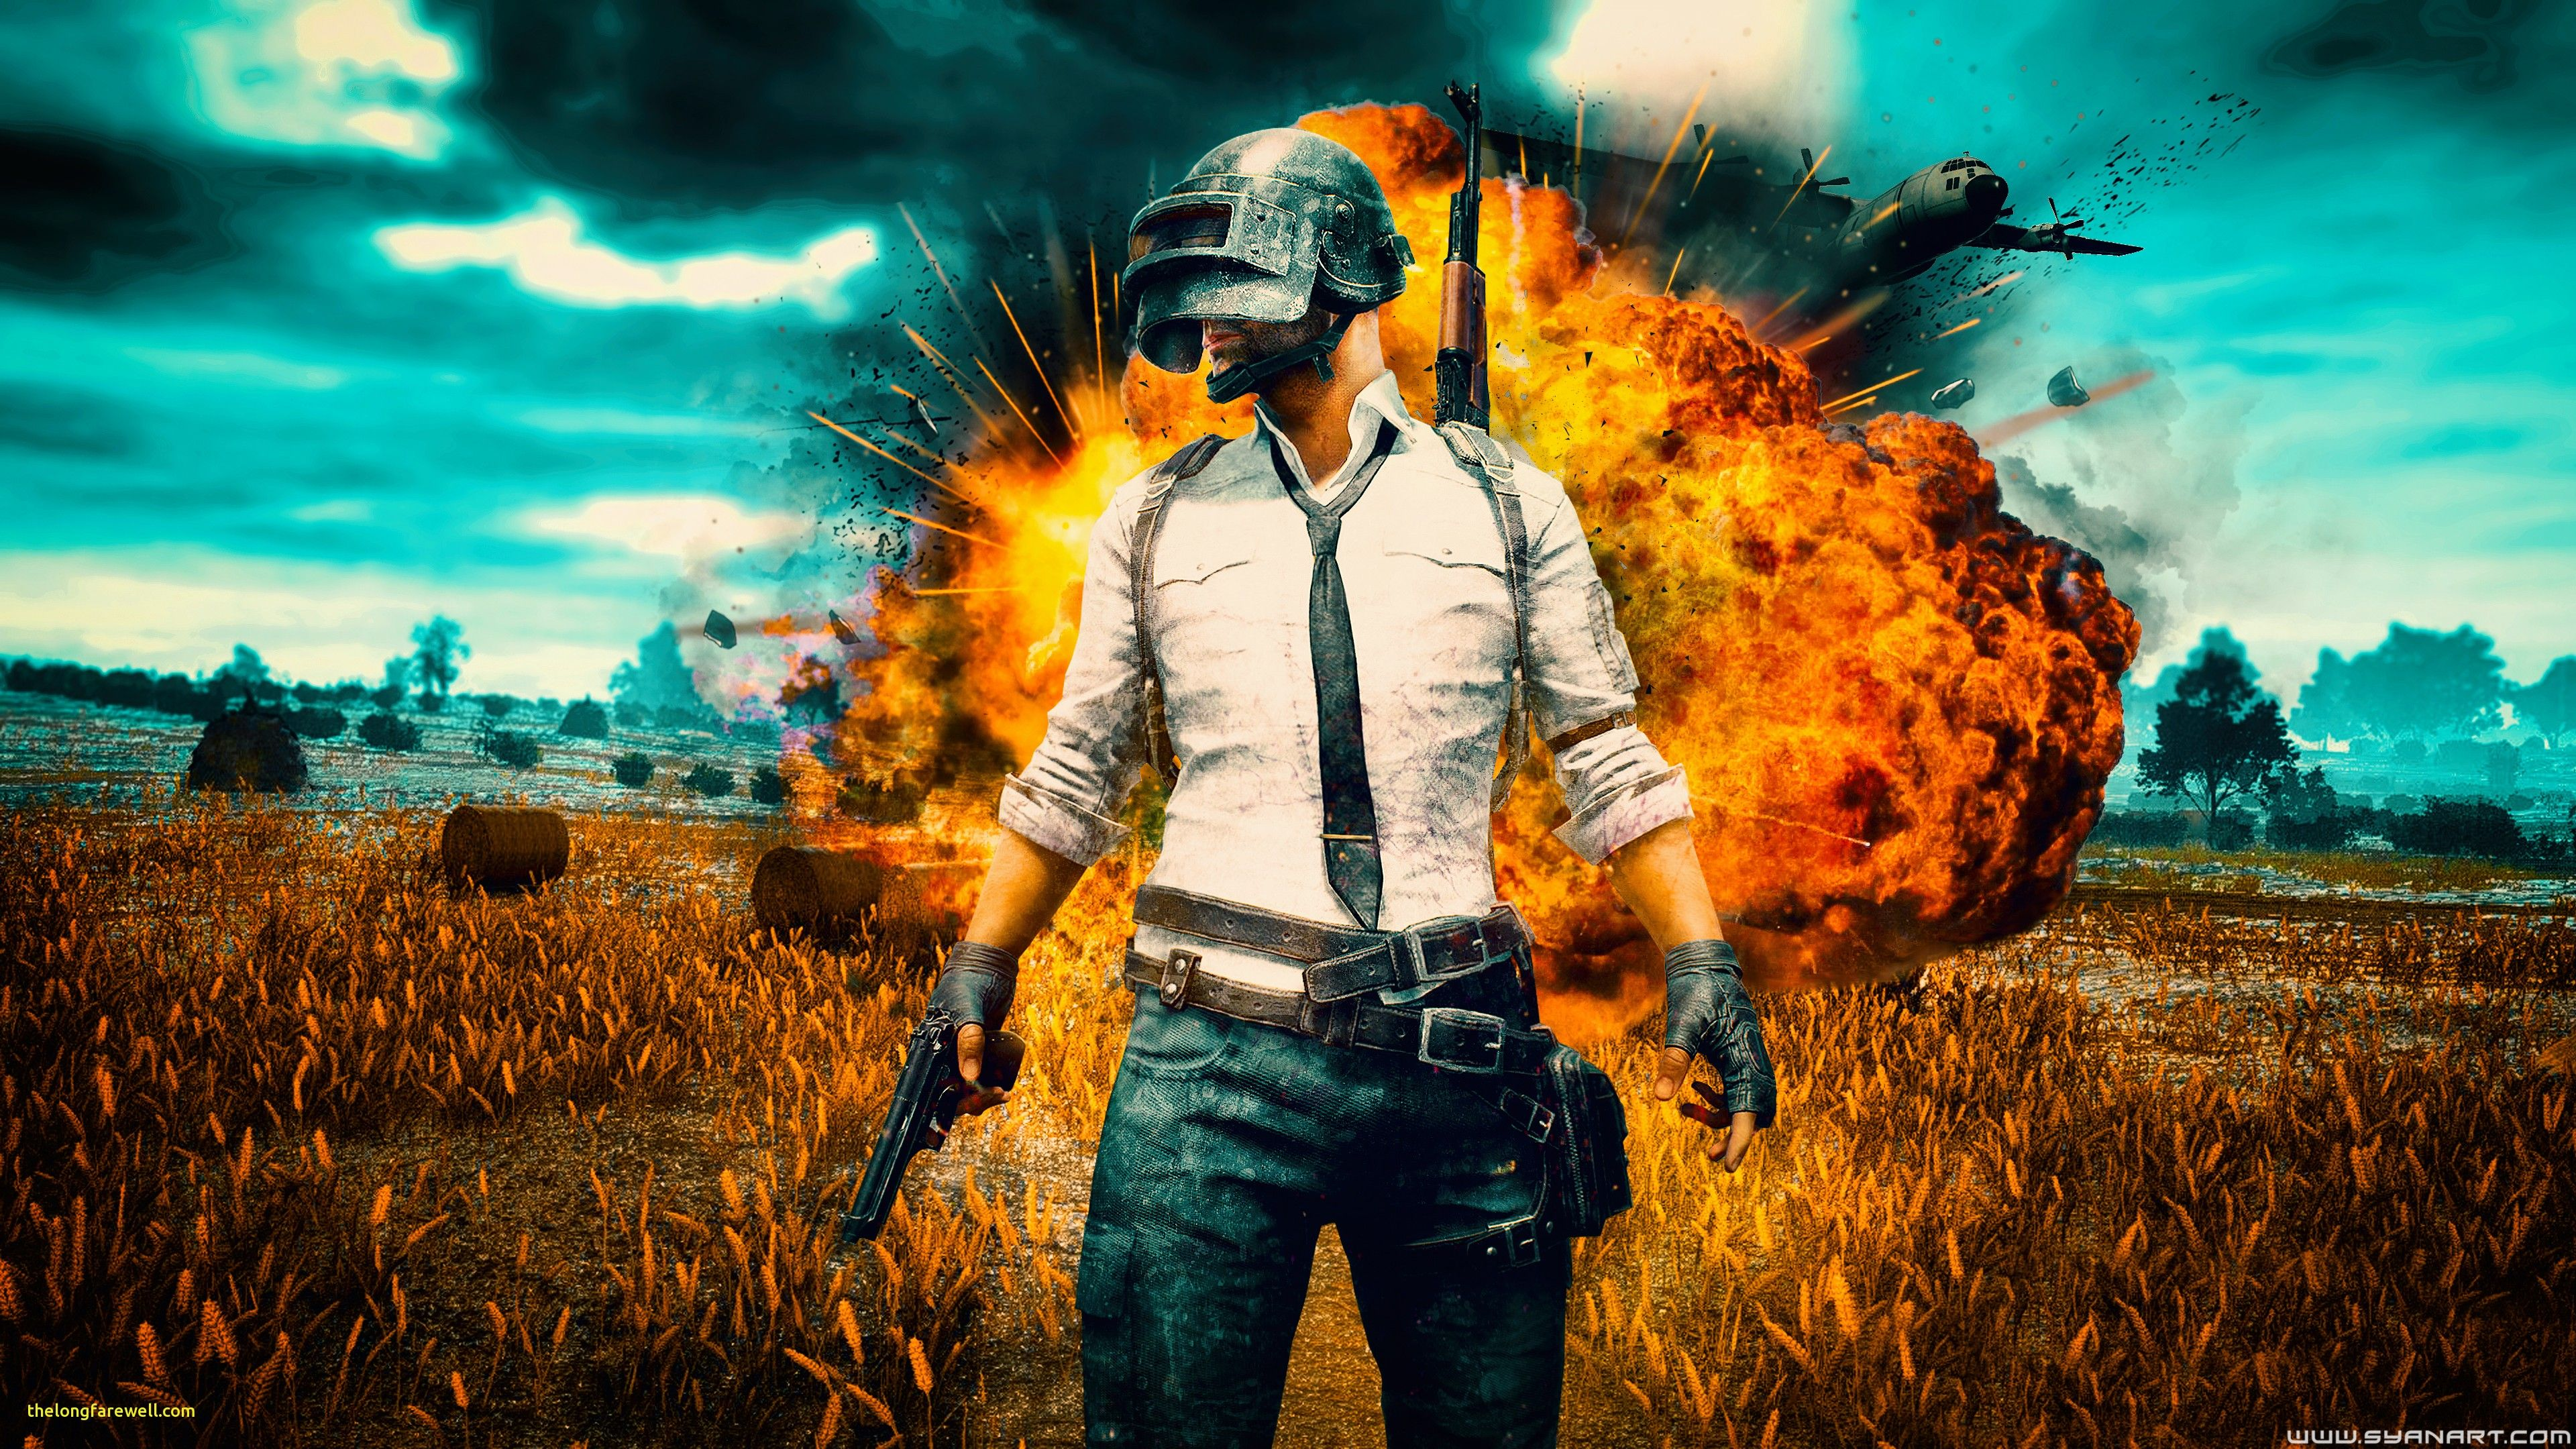 4k Tapete 4k Pubg Graphics Hd Wallpapers!    And Backgrounds - pubg 4k wallpapers iphone android and desktop page 3!    of 3 the